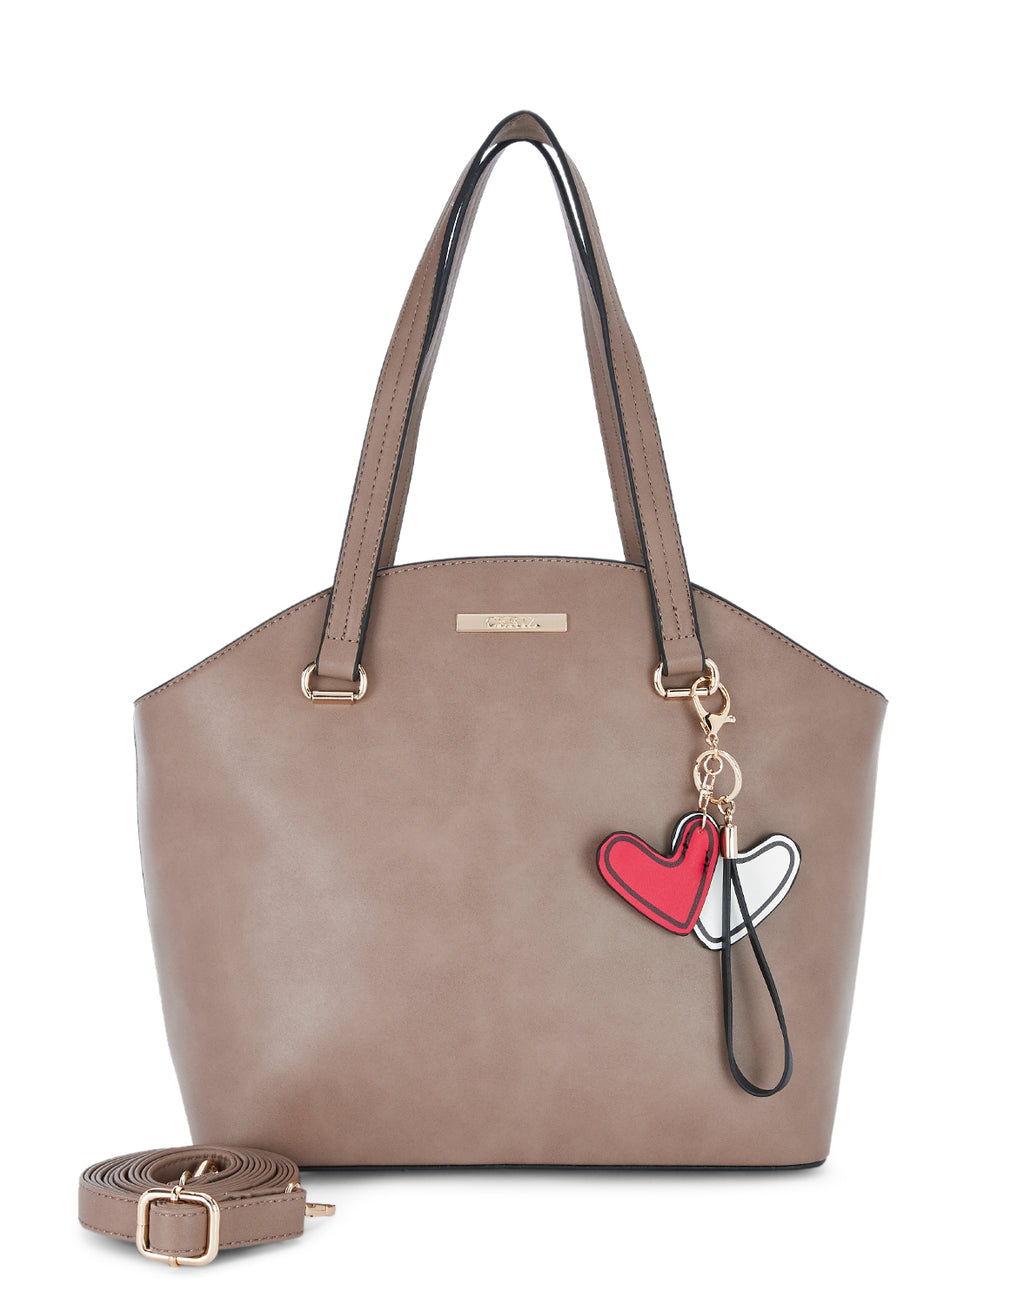 Alair Solid Stone Tote